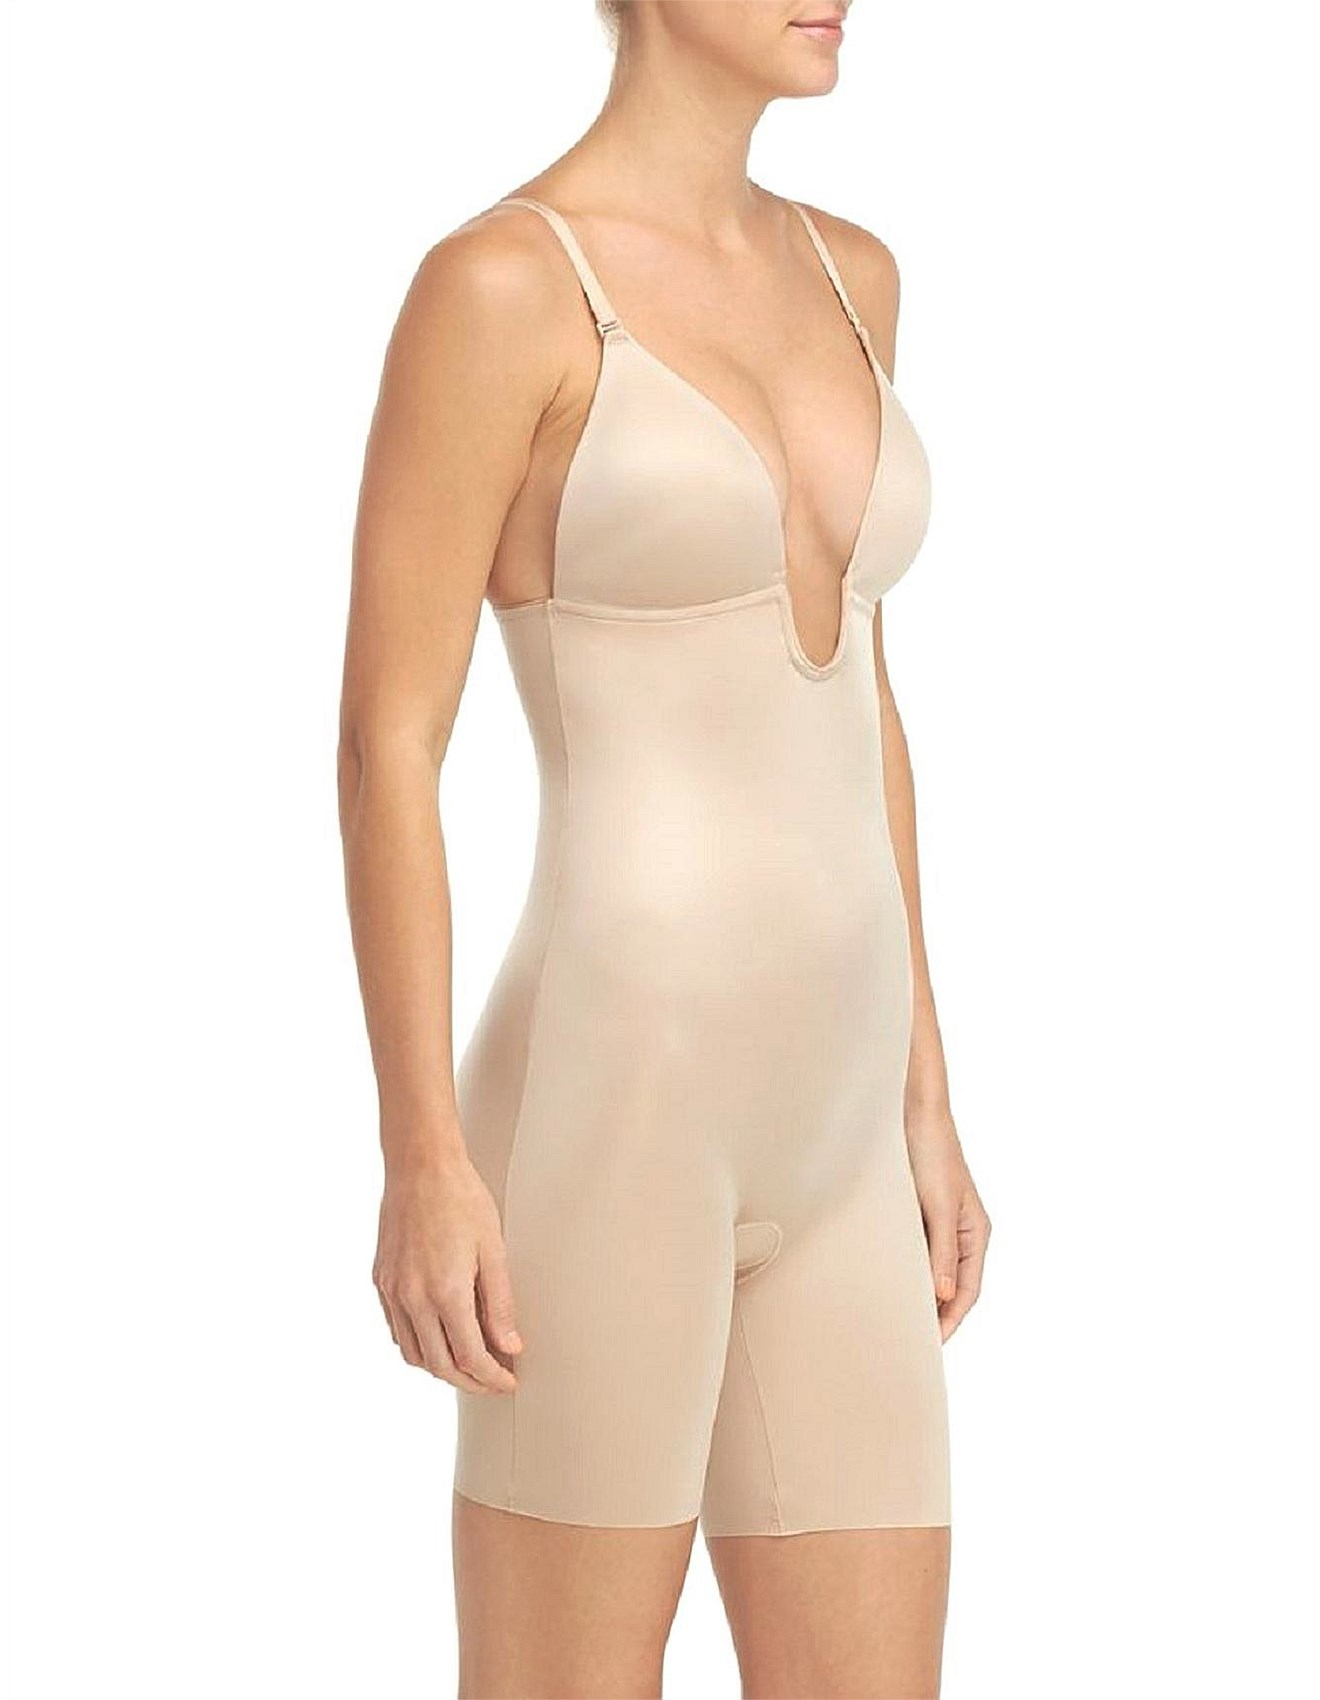 5612e59283e SUIT YOUR FANCY PLUNGE LOW BACK MID THIGH BODYSUIT Special Offer. 1